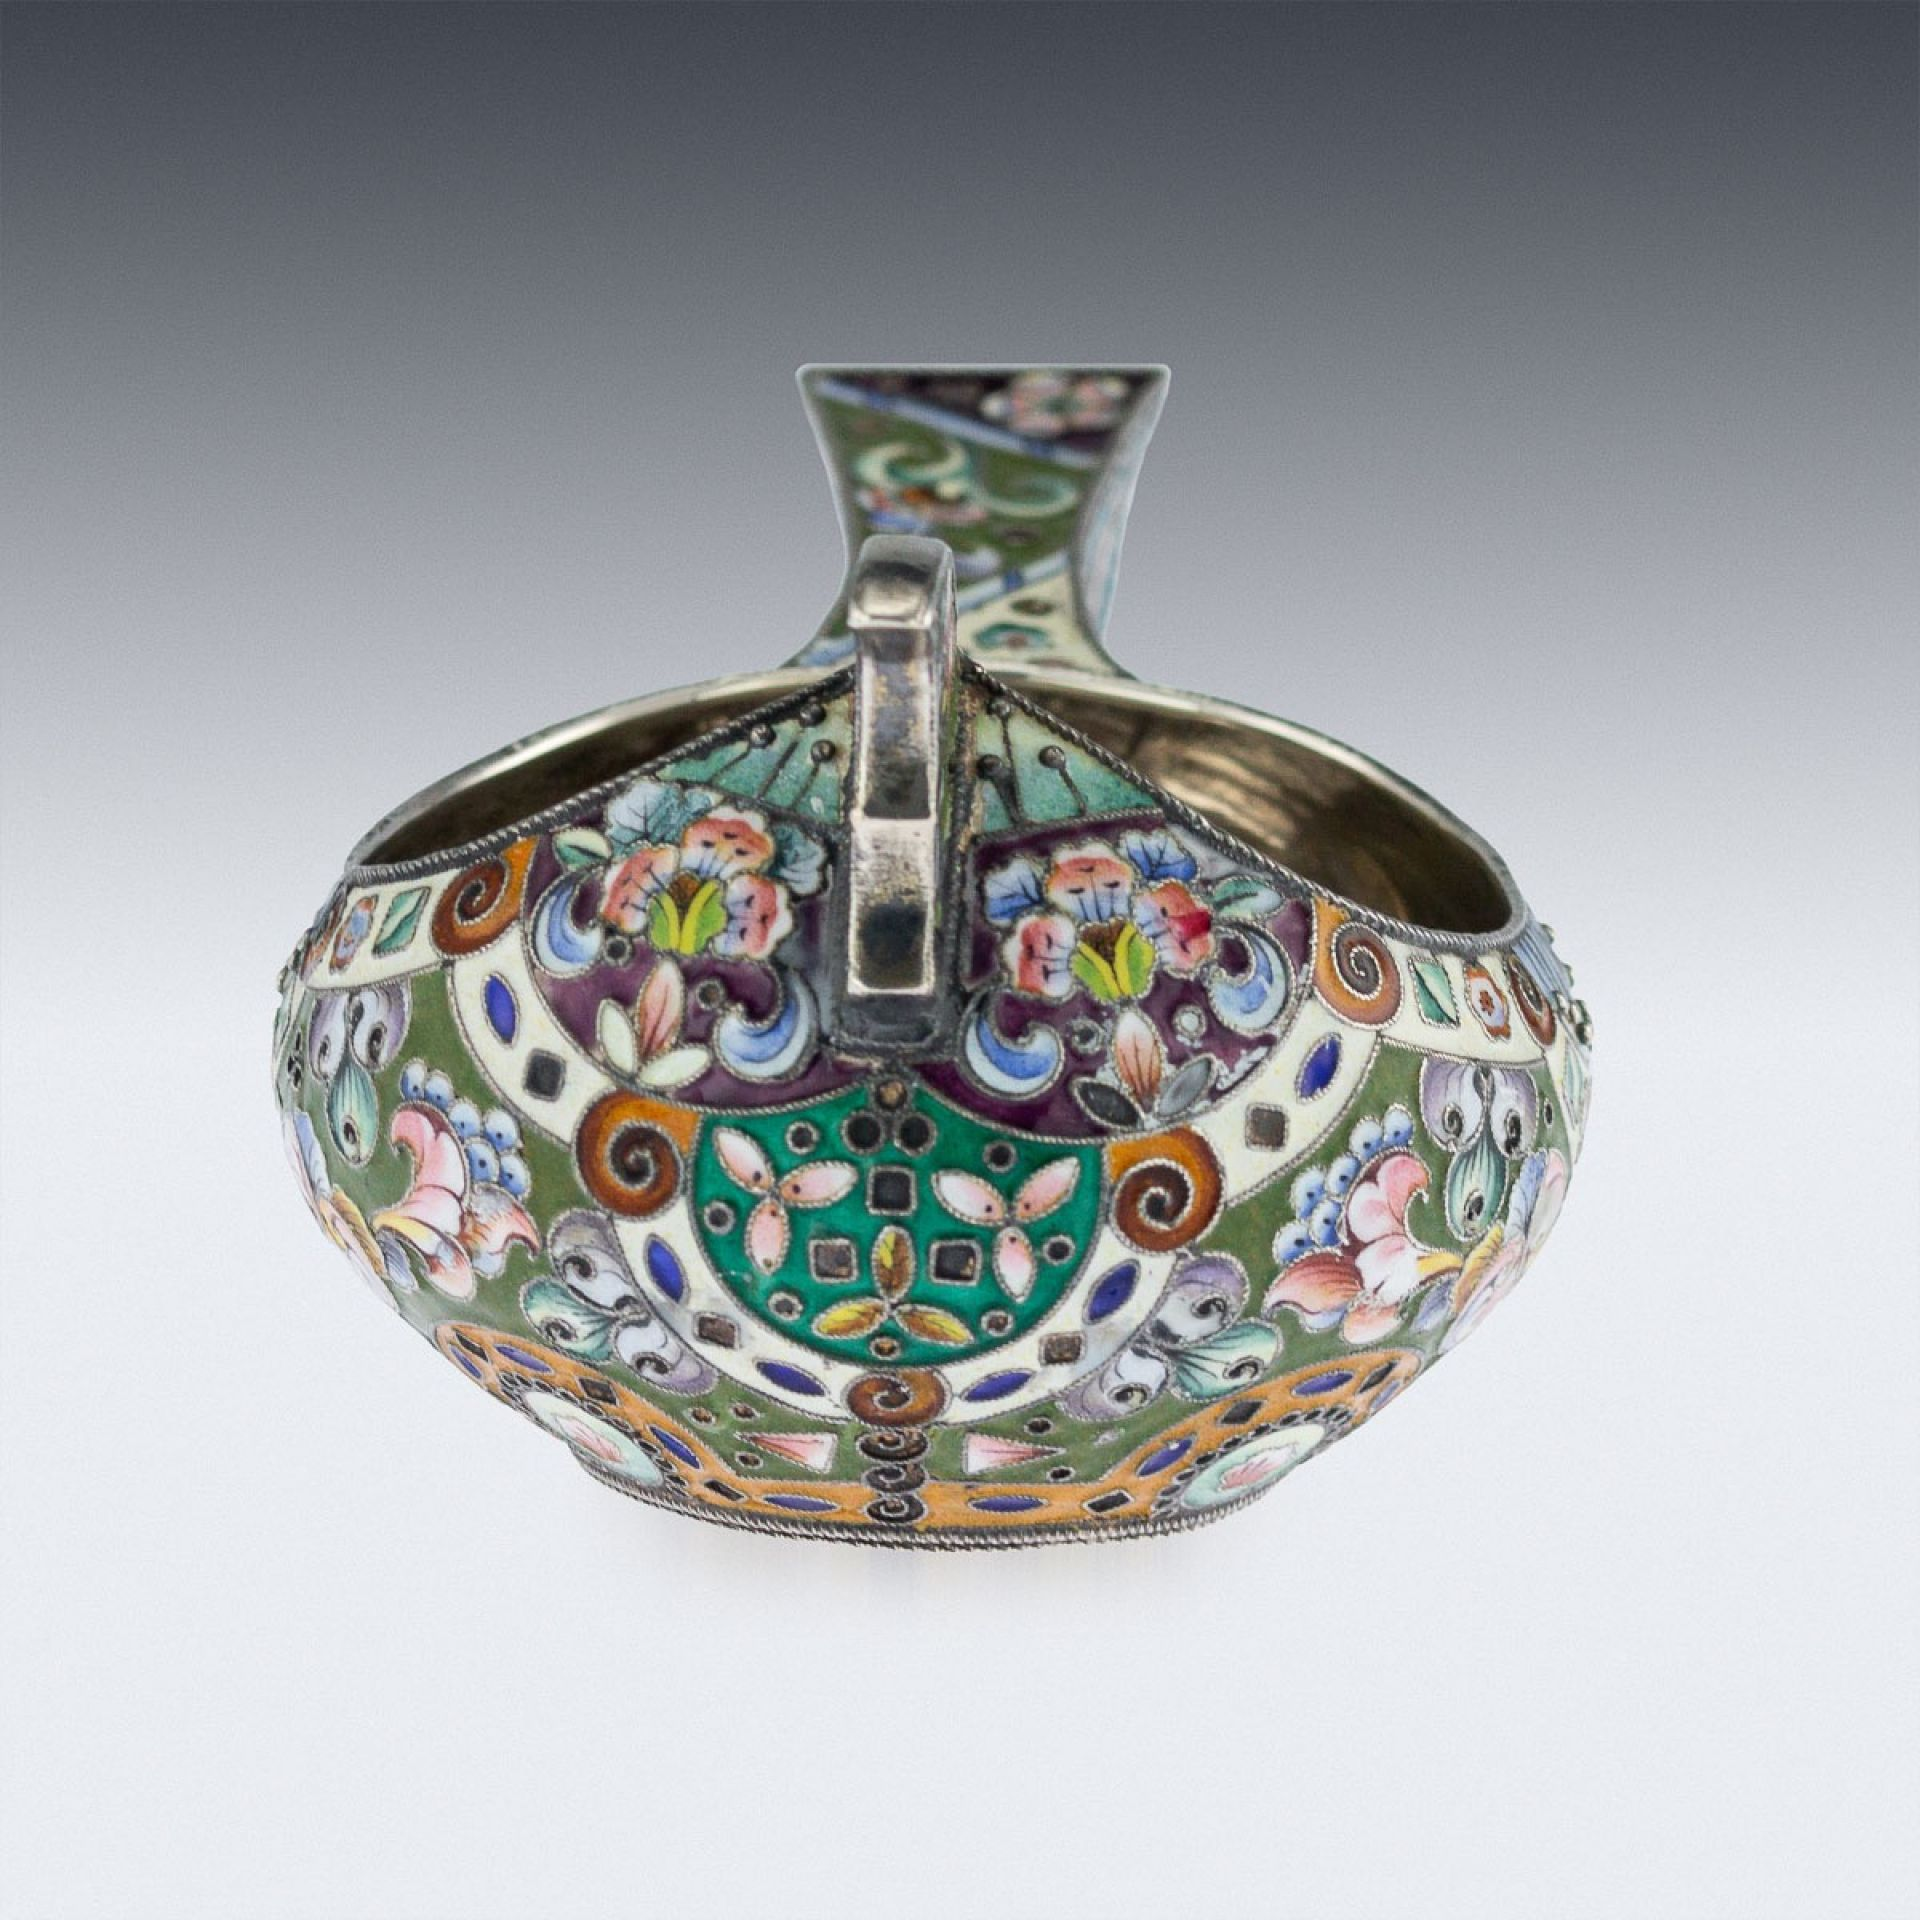 ANTIQUE 20thC RUSSIAN SOLID SILVER & SHADED ENAMEL KOVSH, GRIGORY SBITNEV c.1910